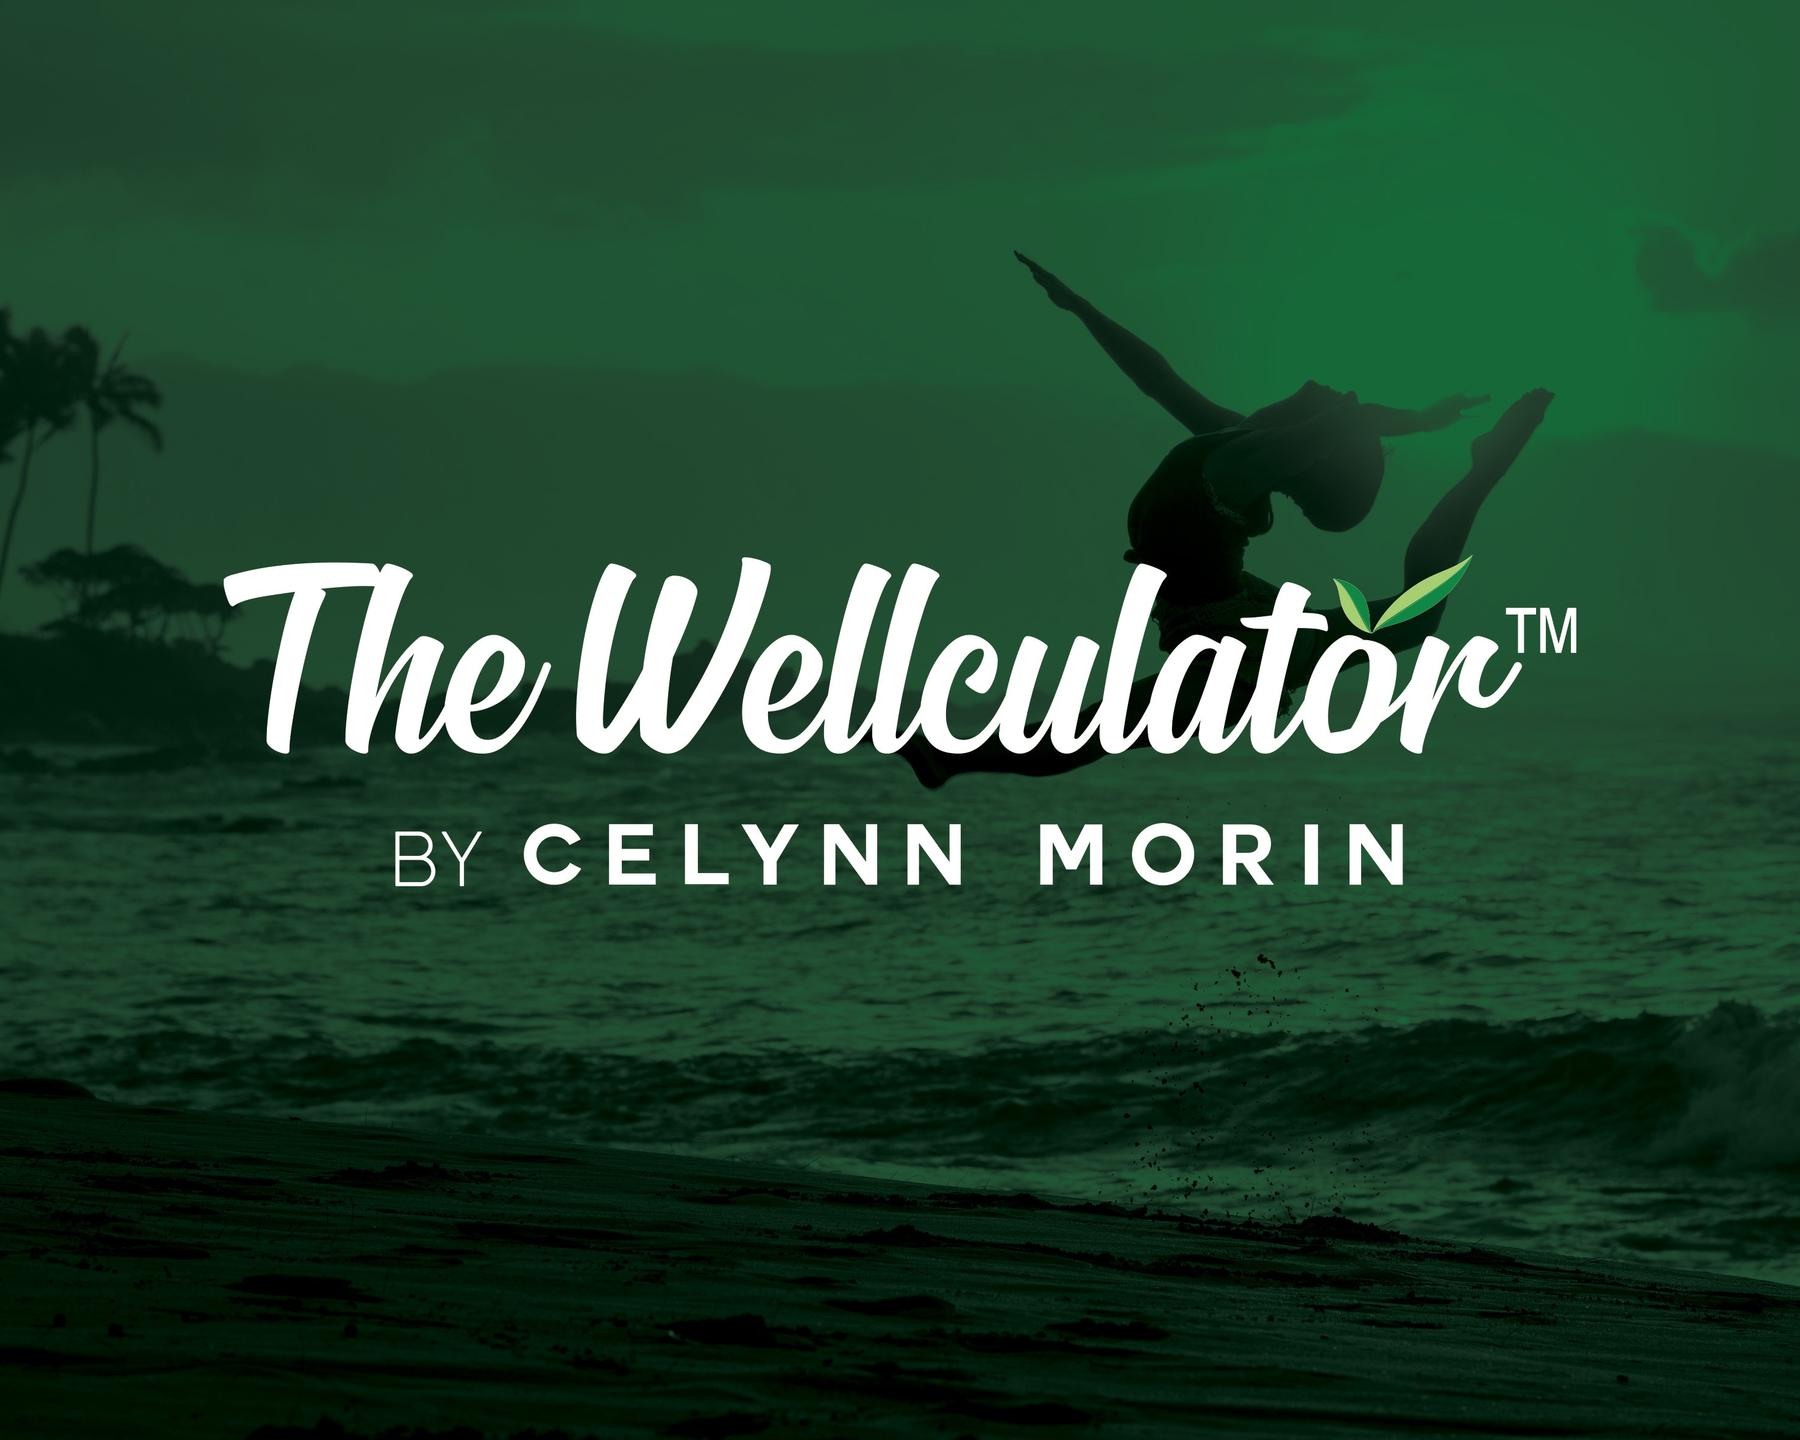 Wellculator